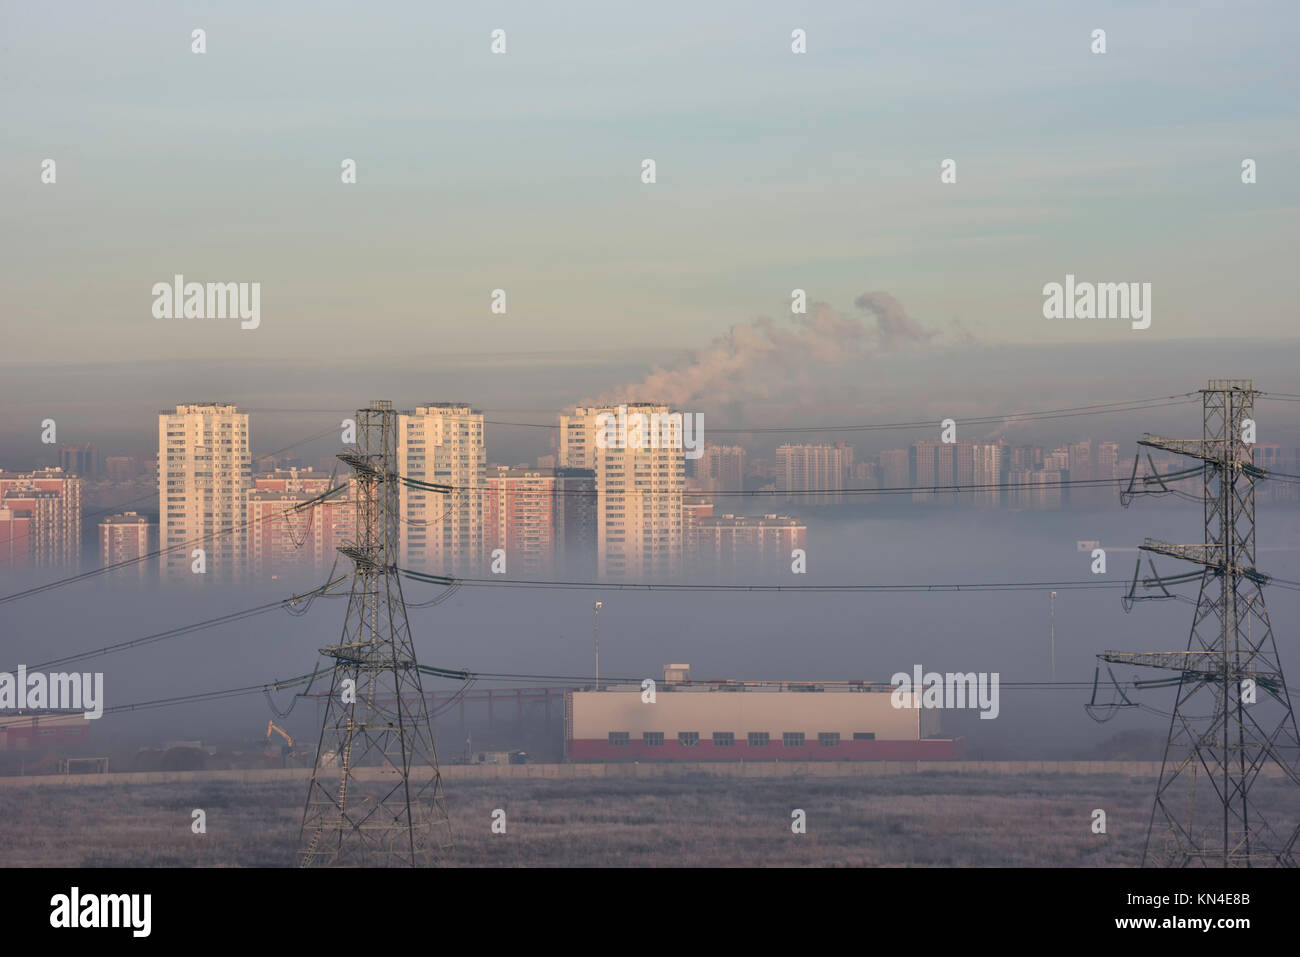 Air pollution in Moscow smog above the houses. - Stock Image